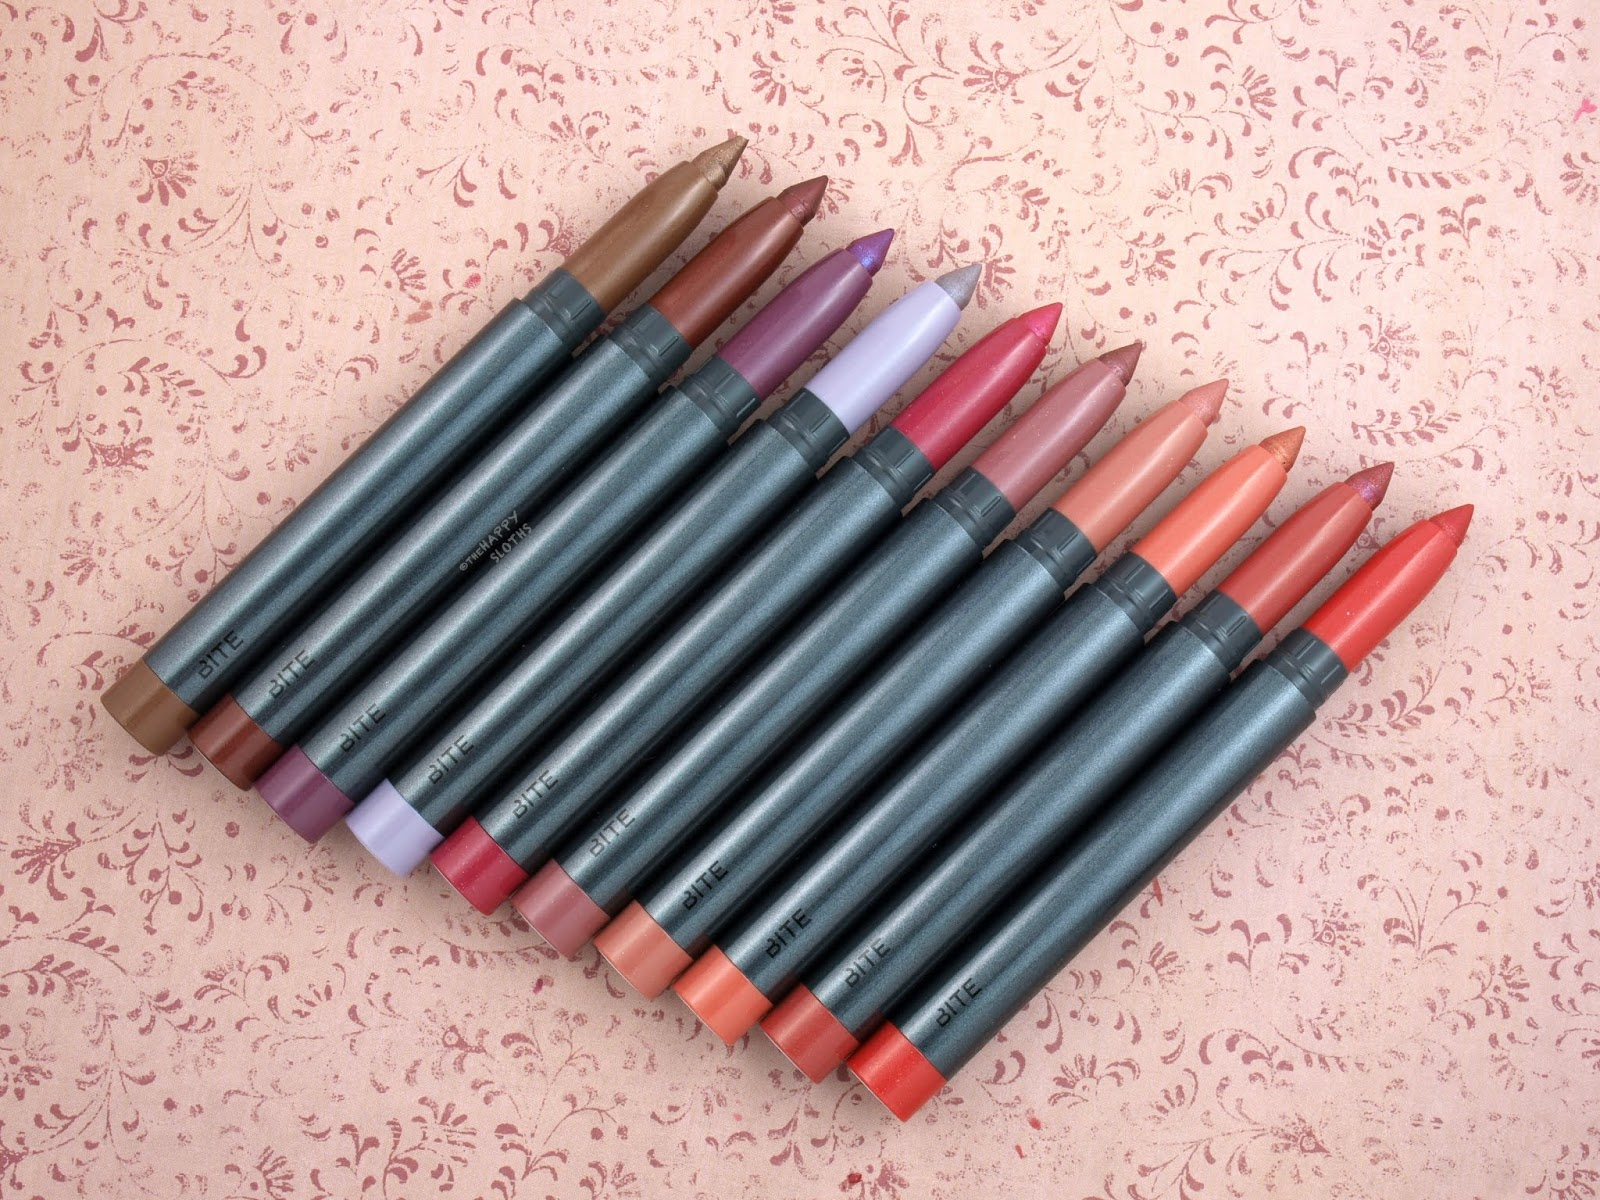 Bite Beauty | Crystal Crème Shimmer Lip Crayon: Review and Swatches